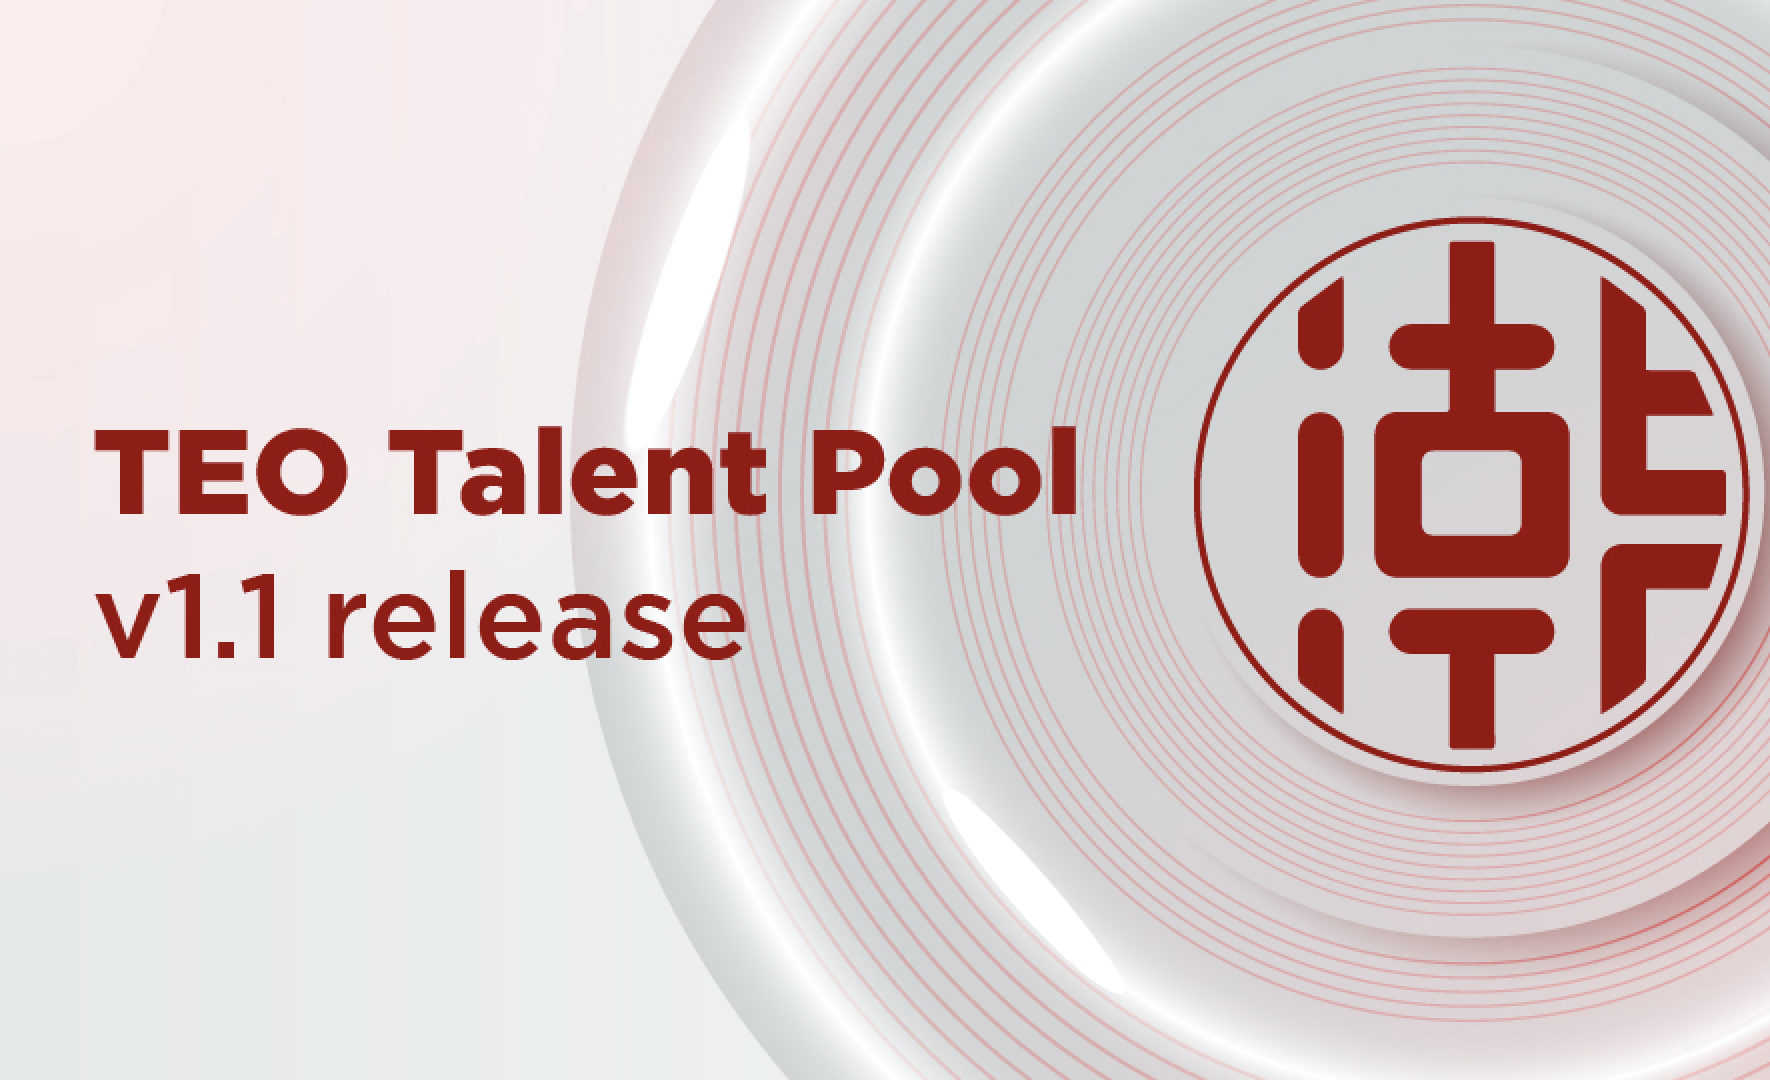 We are pleased to announce the launch of TEO Talent Pool v1.1